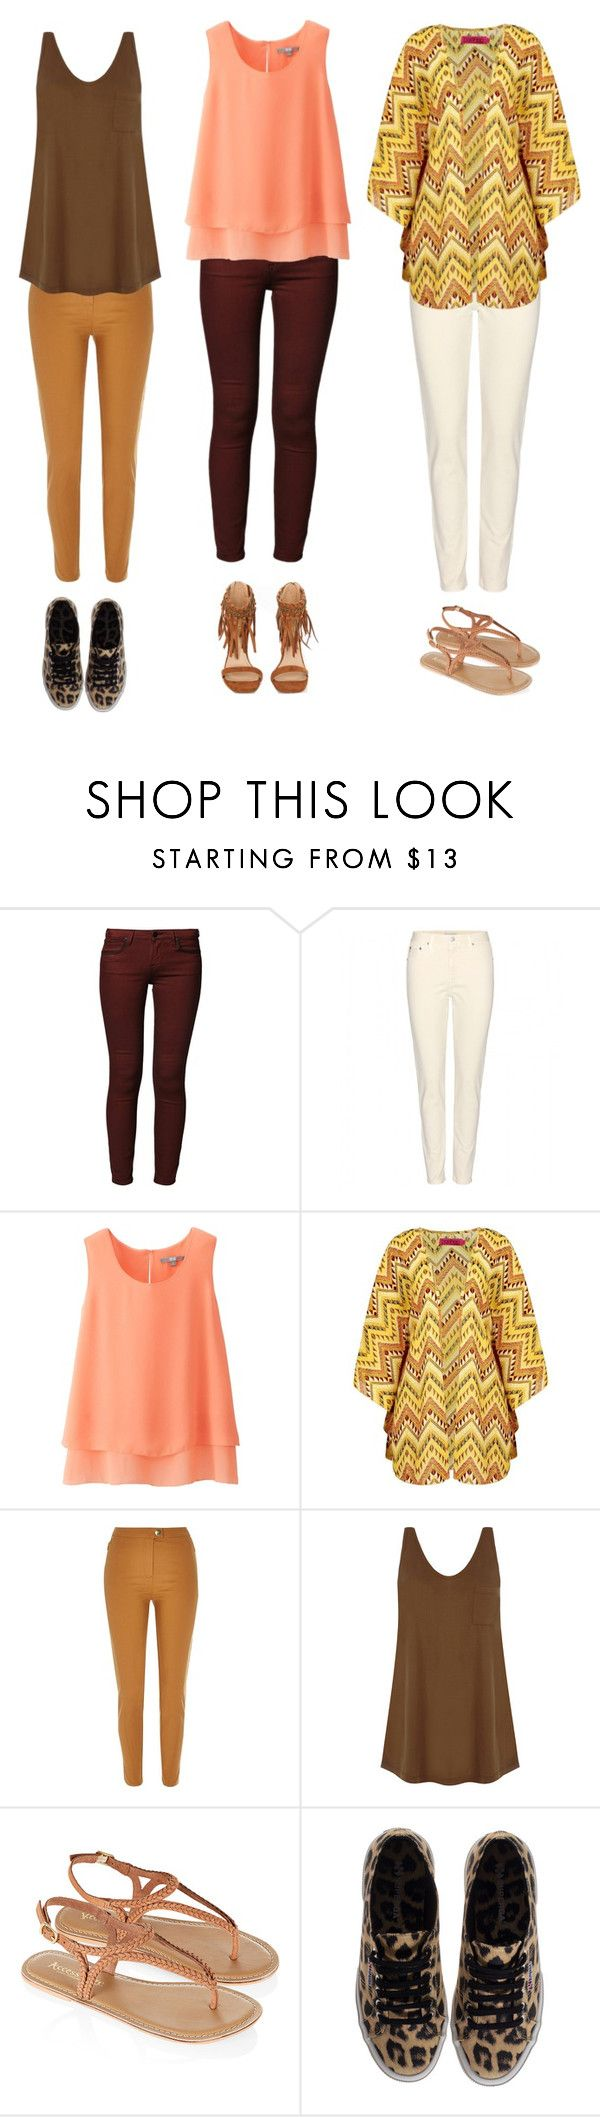 """""""SS15 colour trends"""" by kettlewellcolours ❤ liked on Polyvore featuring Lee, AG Adriano Goldschmied, Uniqlo, River Island, Warehouse, Monsoon, Superga and Missguided"""